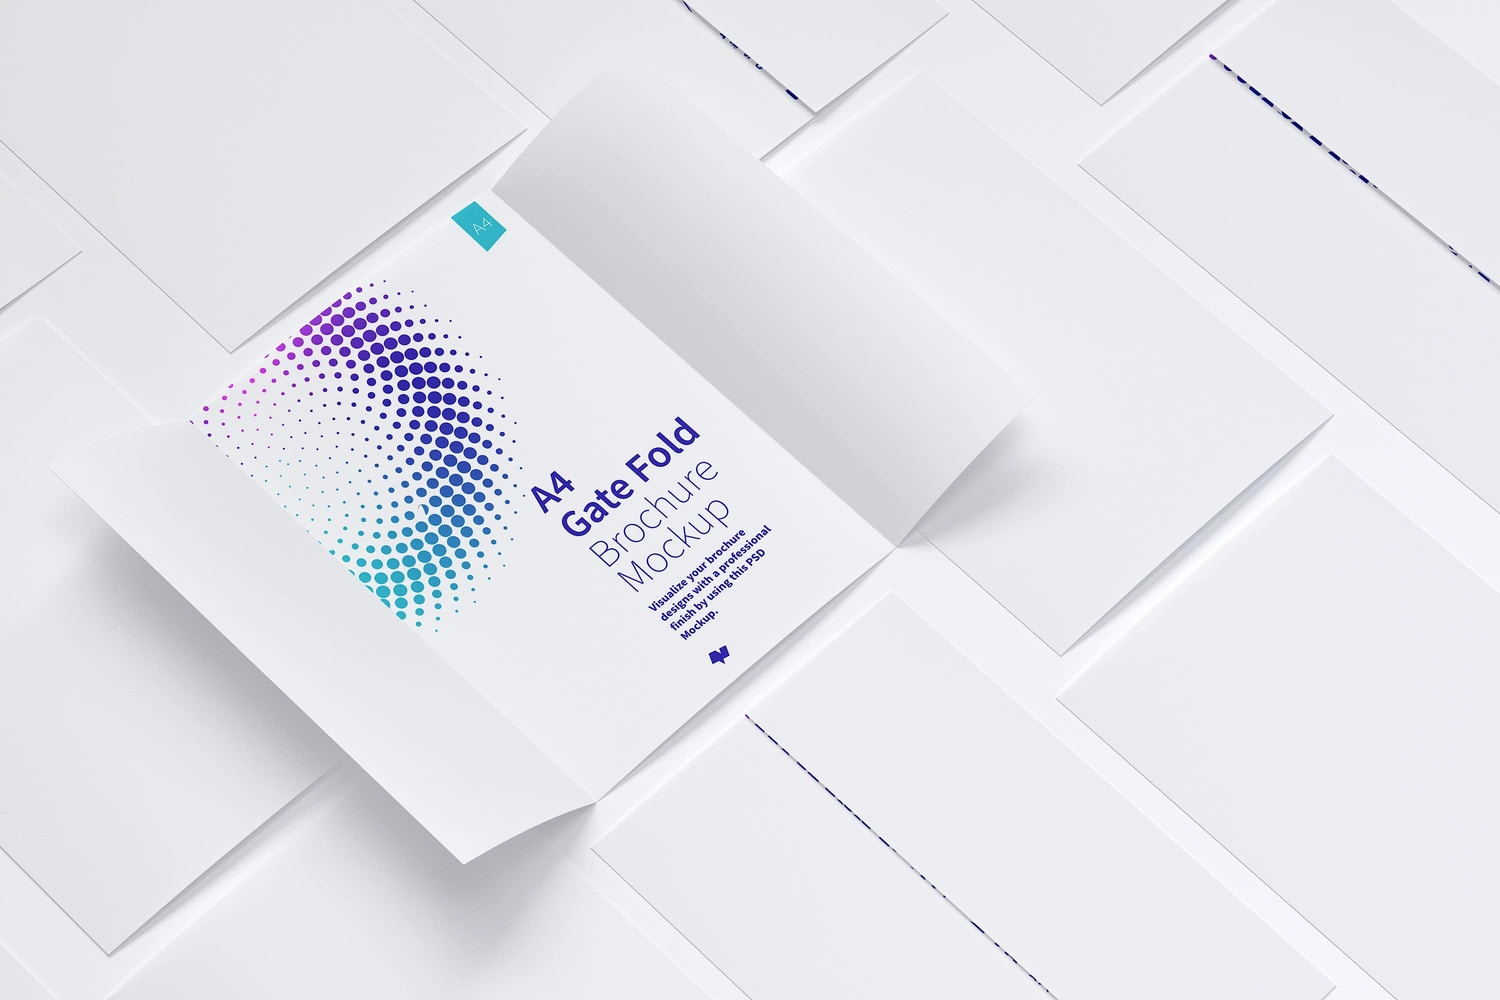 A4 Gate Fold Brochure Mockup 06 by Original Mockups on Original Mockups